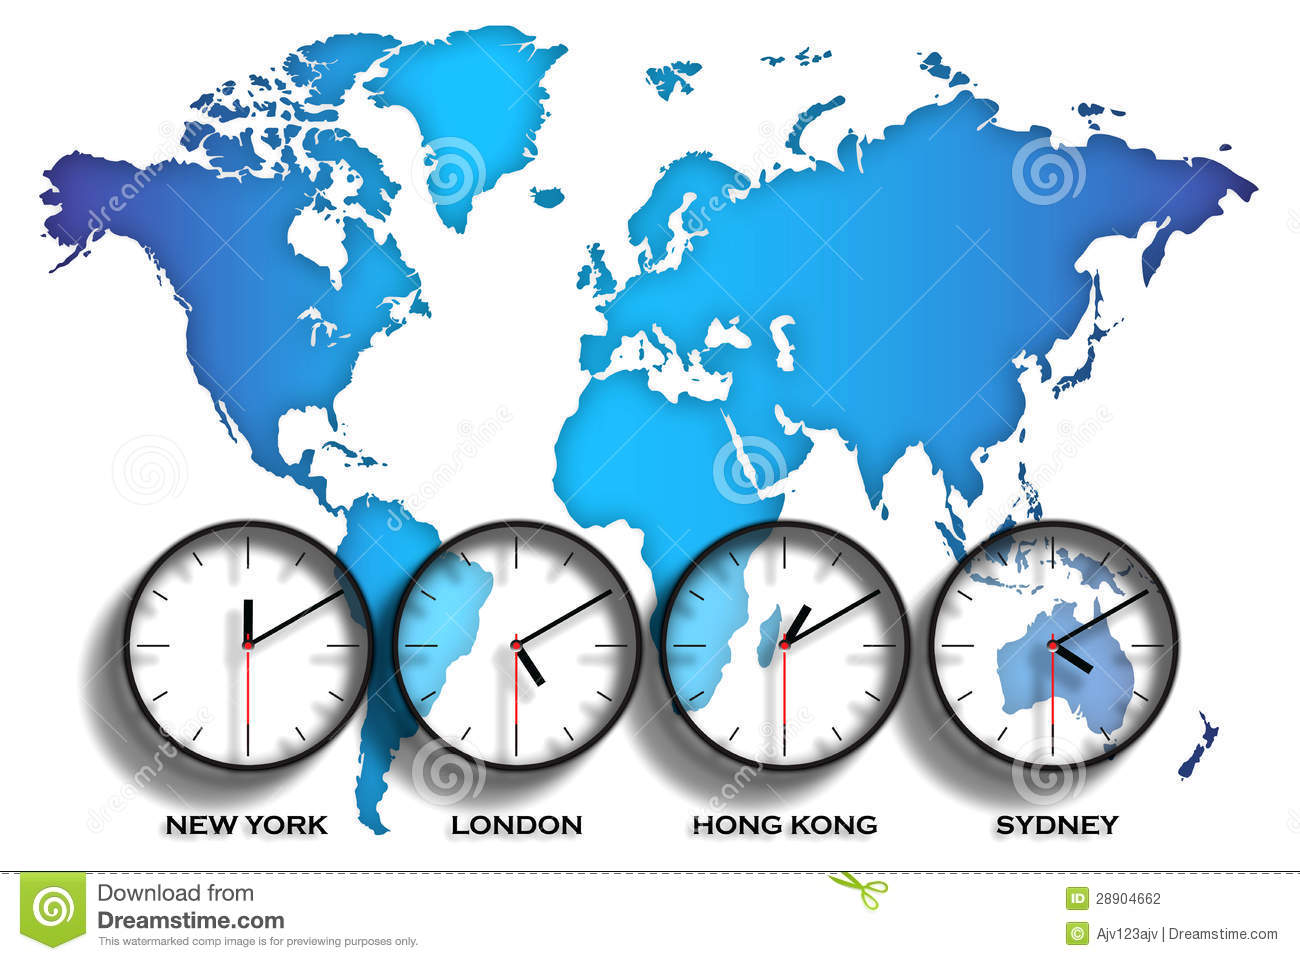 World map time zones stock illustration. Illustration of sydney ...